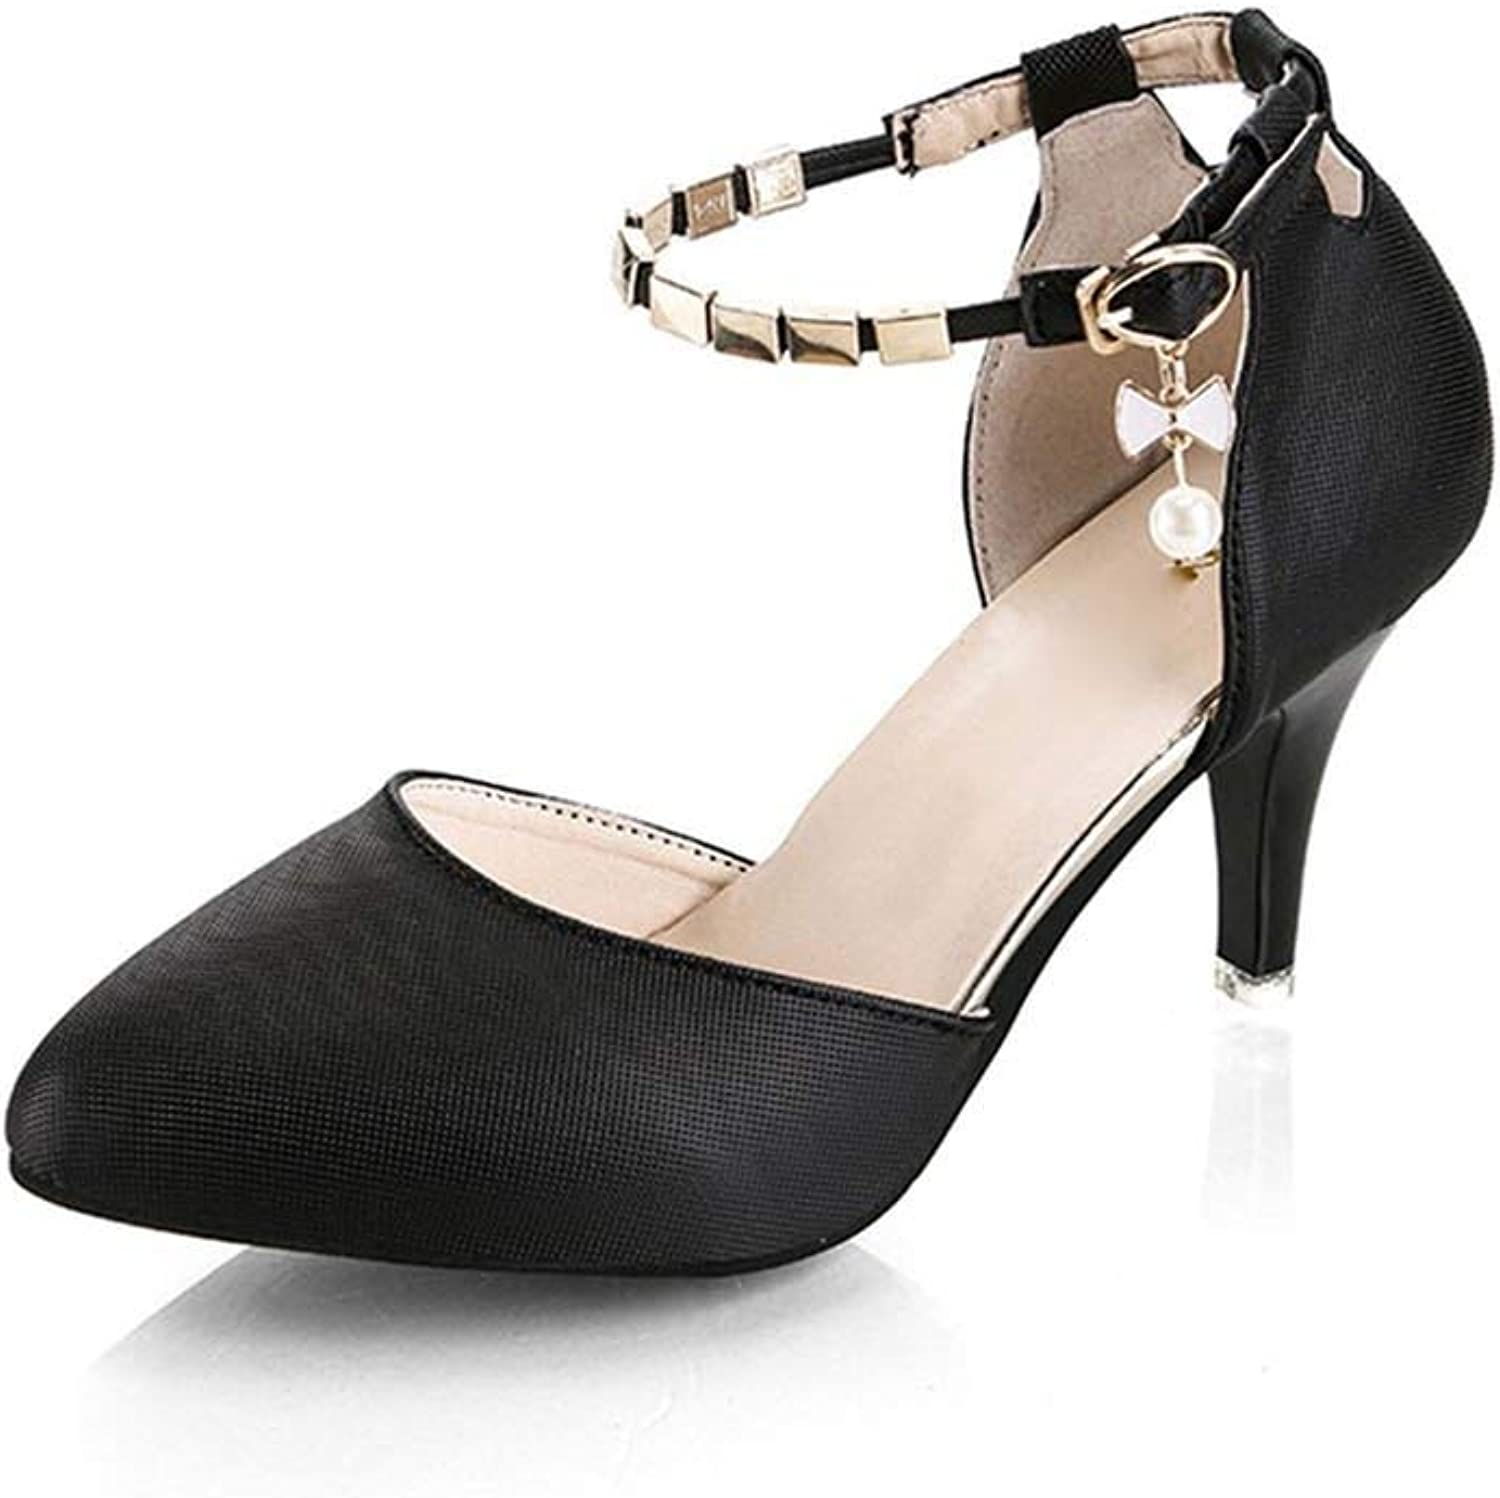 YP-fashion Plus Size 35-43 Women Ankle Strap Pumps High Heels Dress shoes Pearly-Lustre shoes